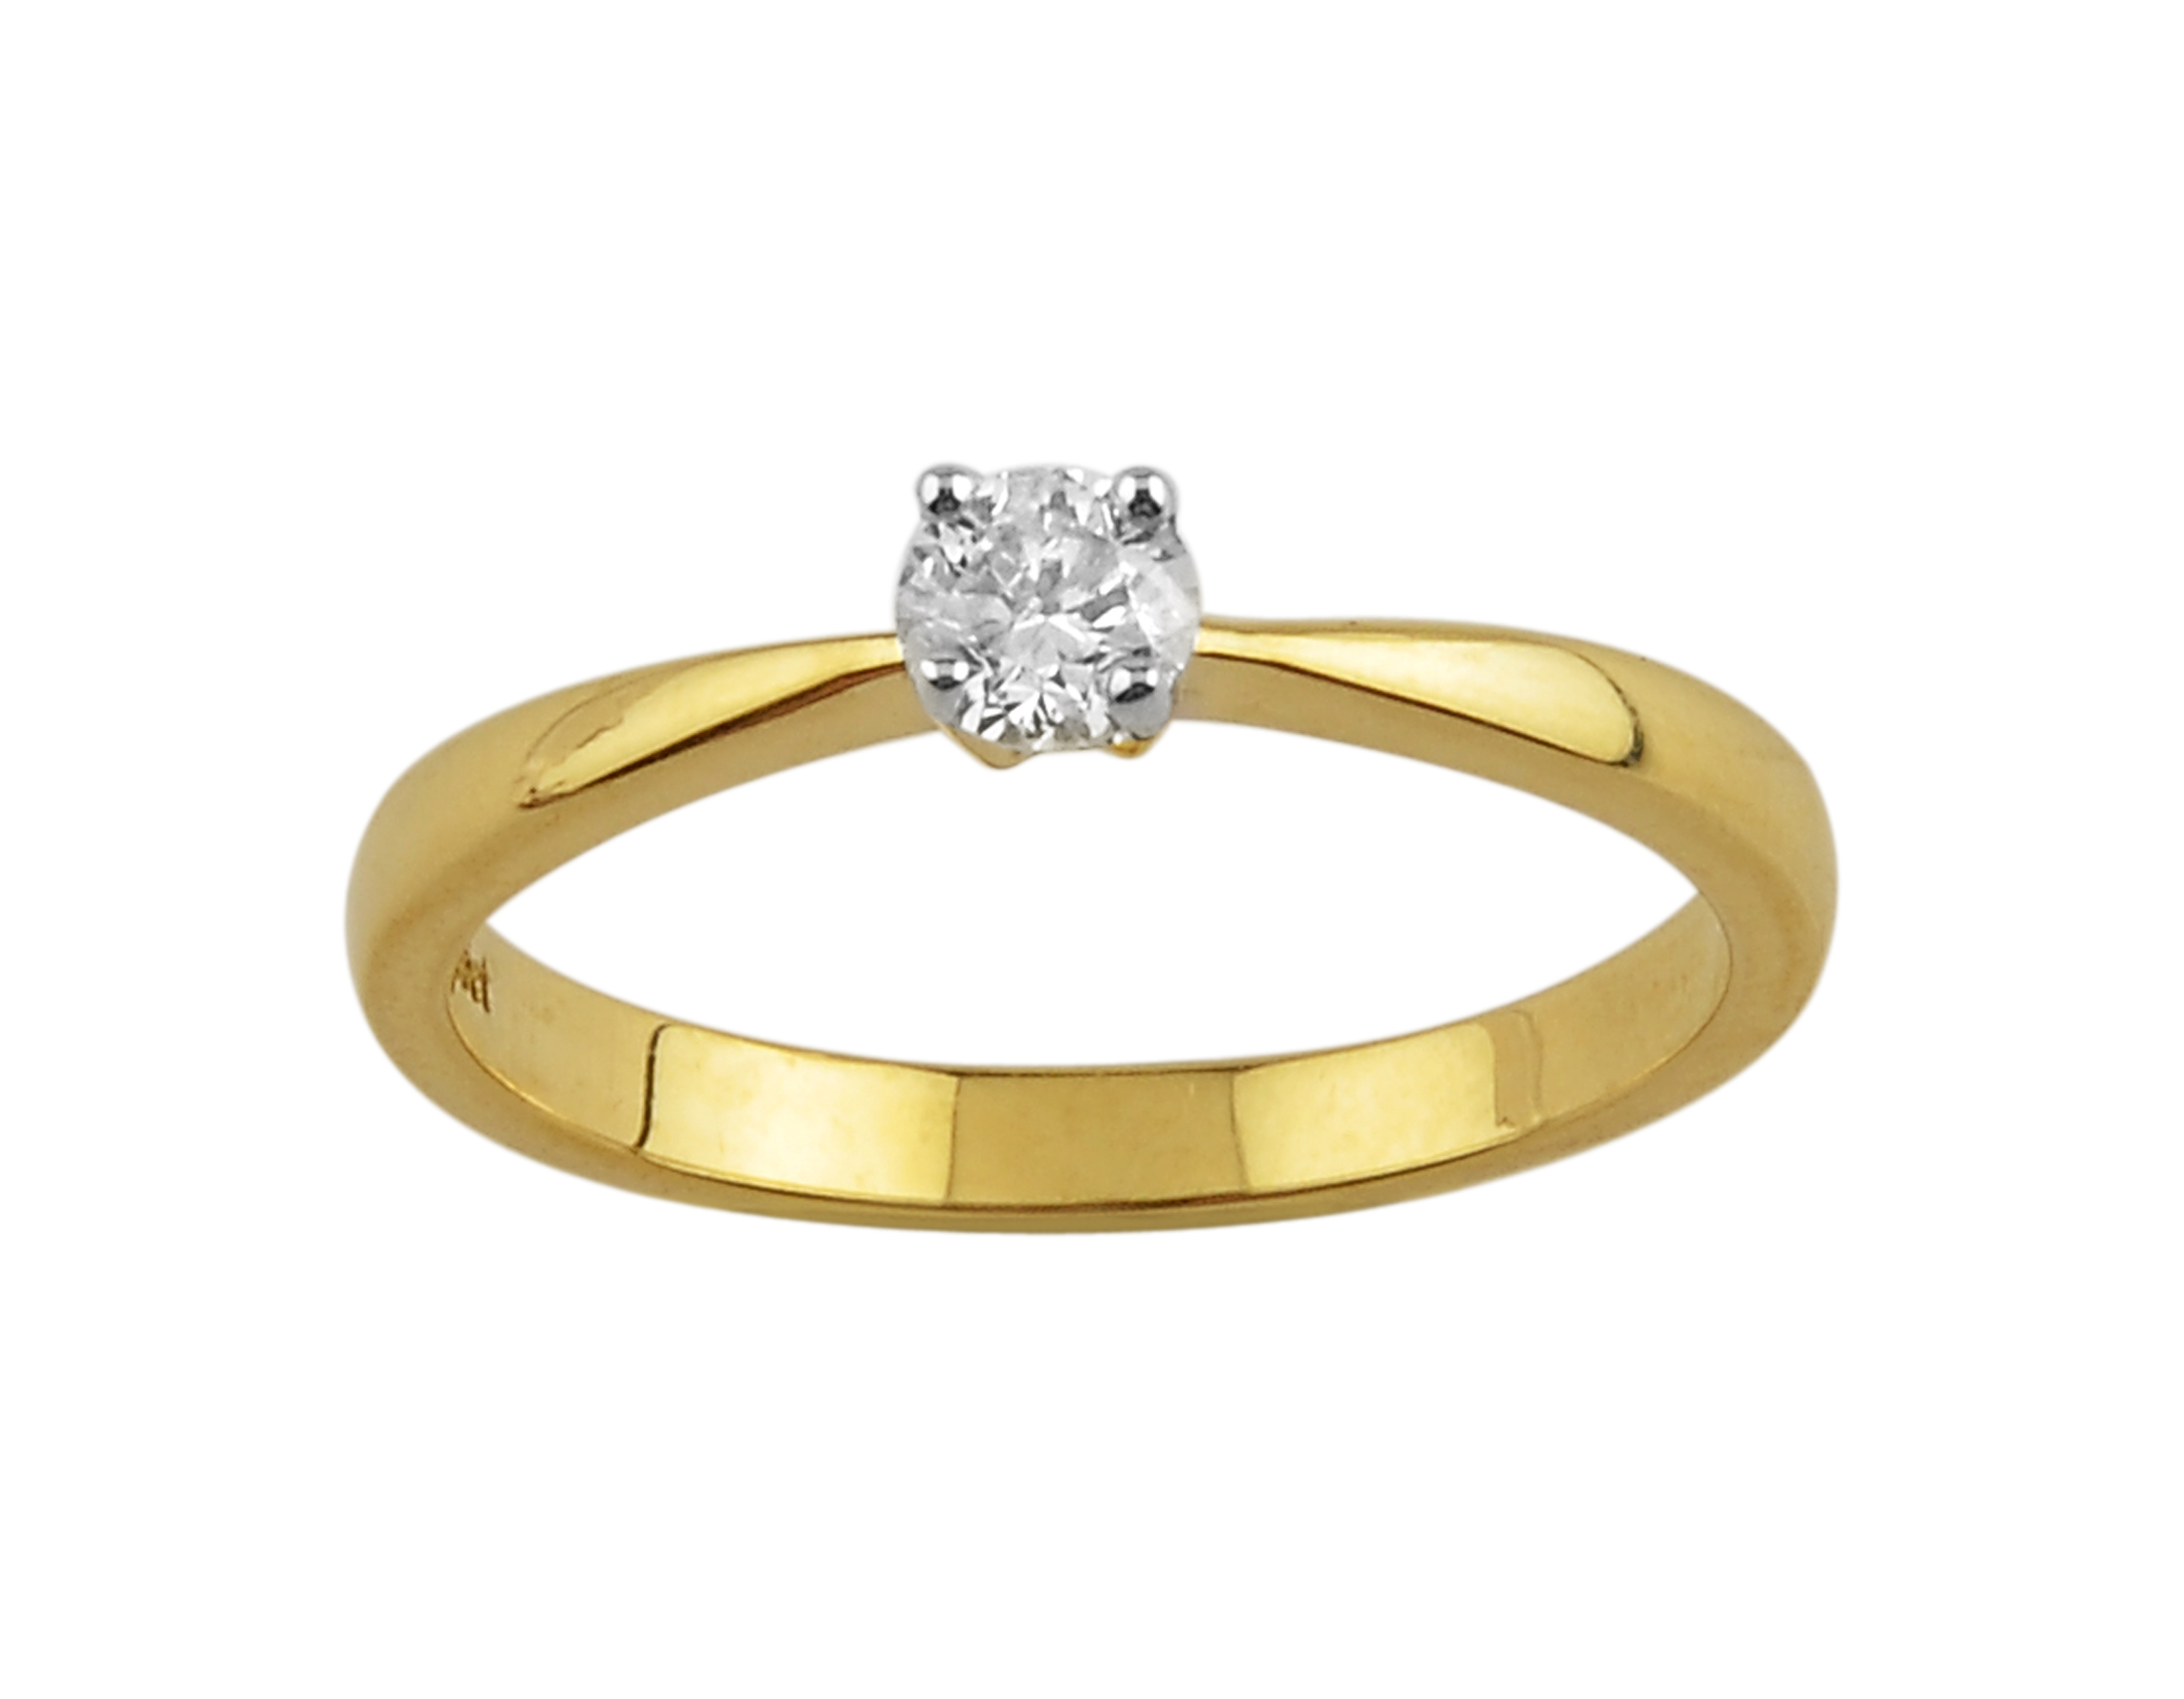 9ct Yellow Gold 0.25ct Diamond Four Claw Trellis Solitaire Ring Size: O